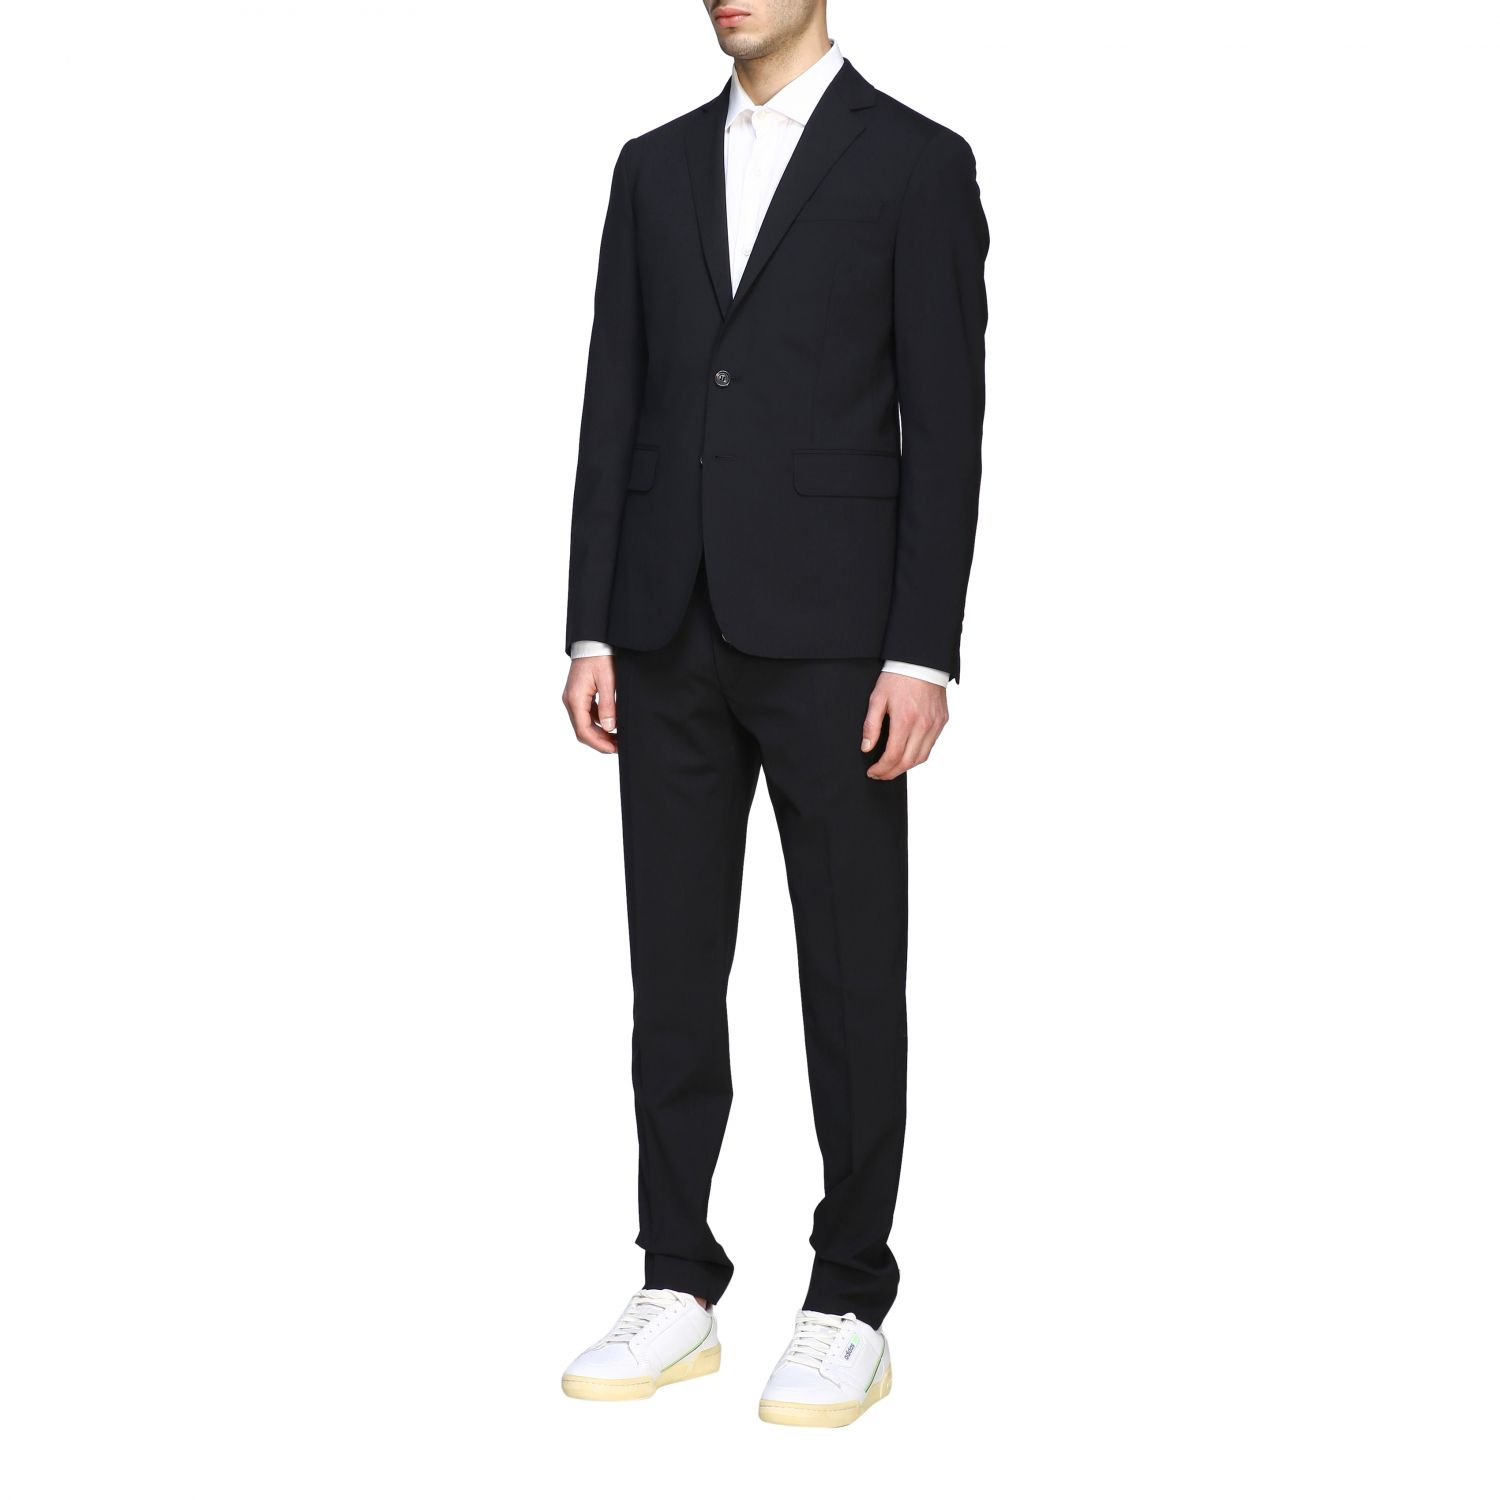 Suit Dsquared2: Dsquared2 suit in basic single-breasted virgin wool blend black 4